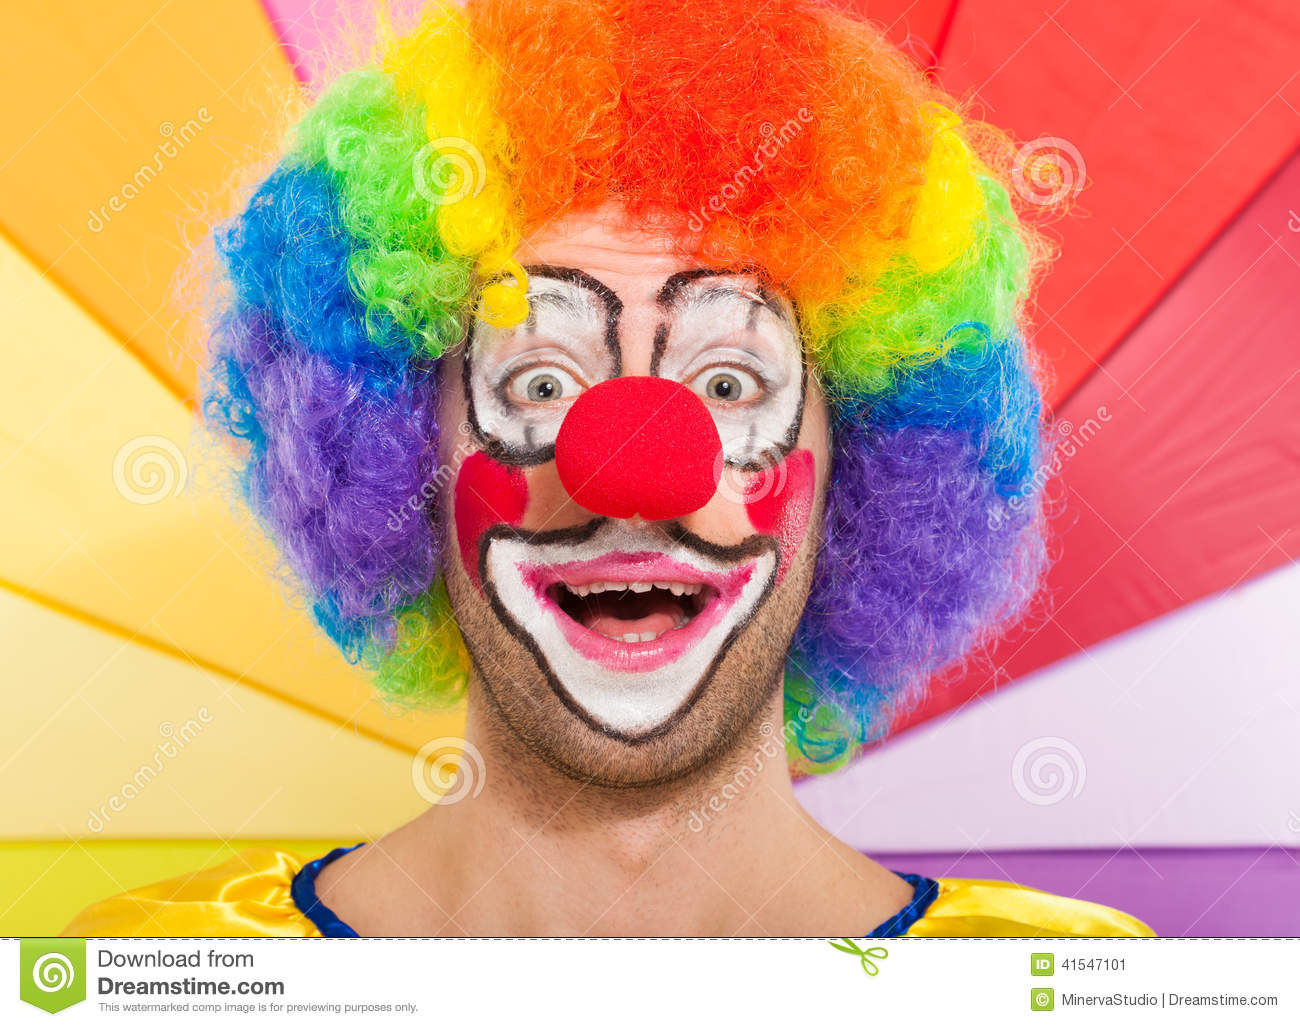 Colorful funny clown face portrait stock image image for Face painting clowns for birthday parties